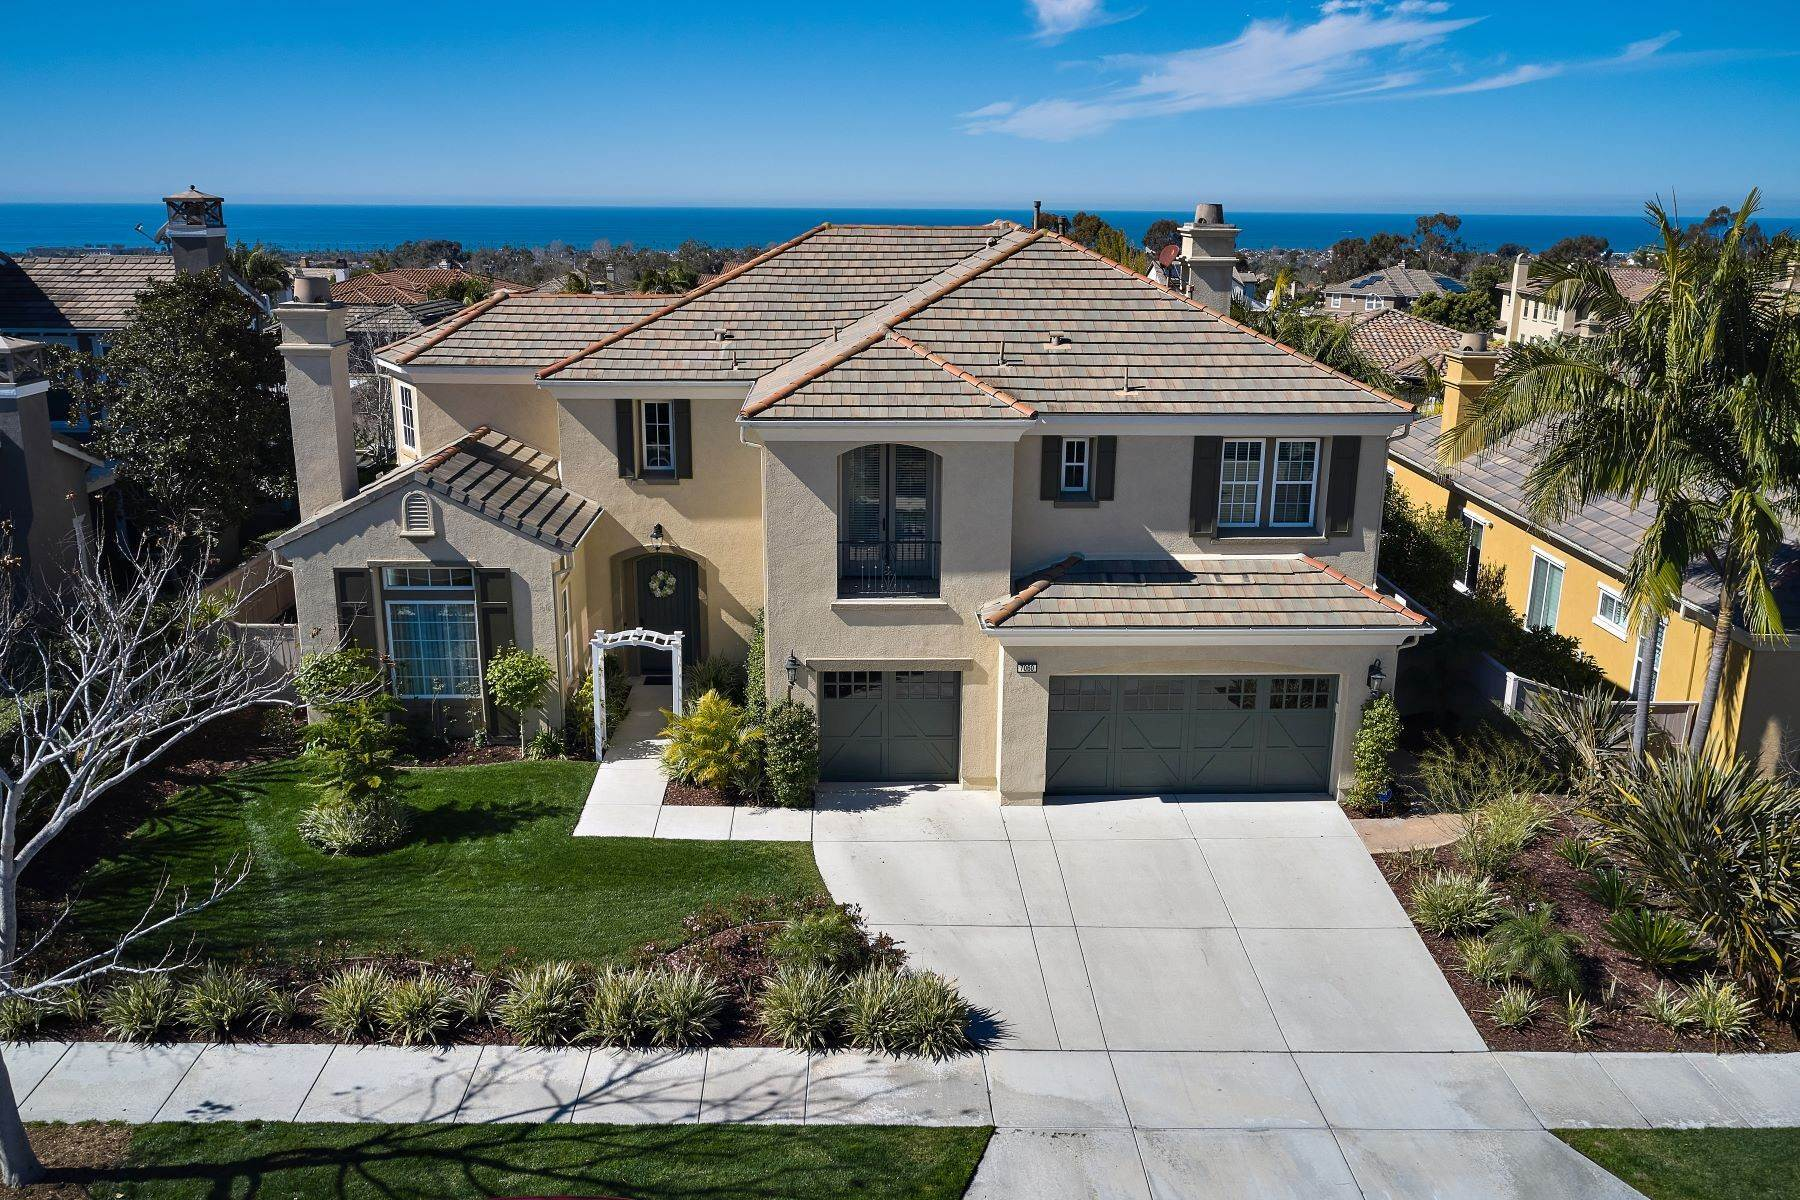 Single Family Homes at 7060 Heron Circle, Carlsbad, CA 92011 7060 Heron Circle Carlsbad, California 92011 United States